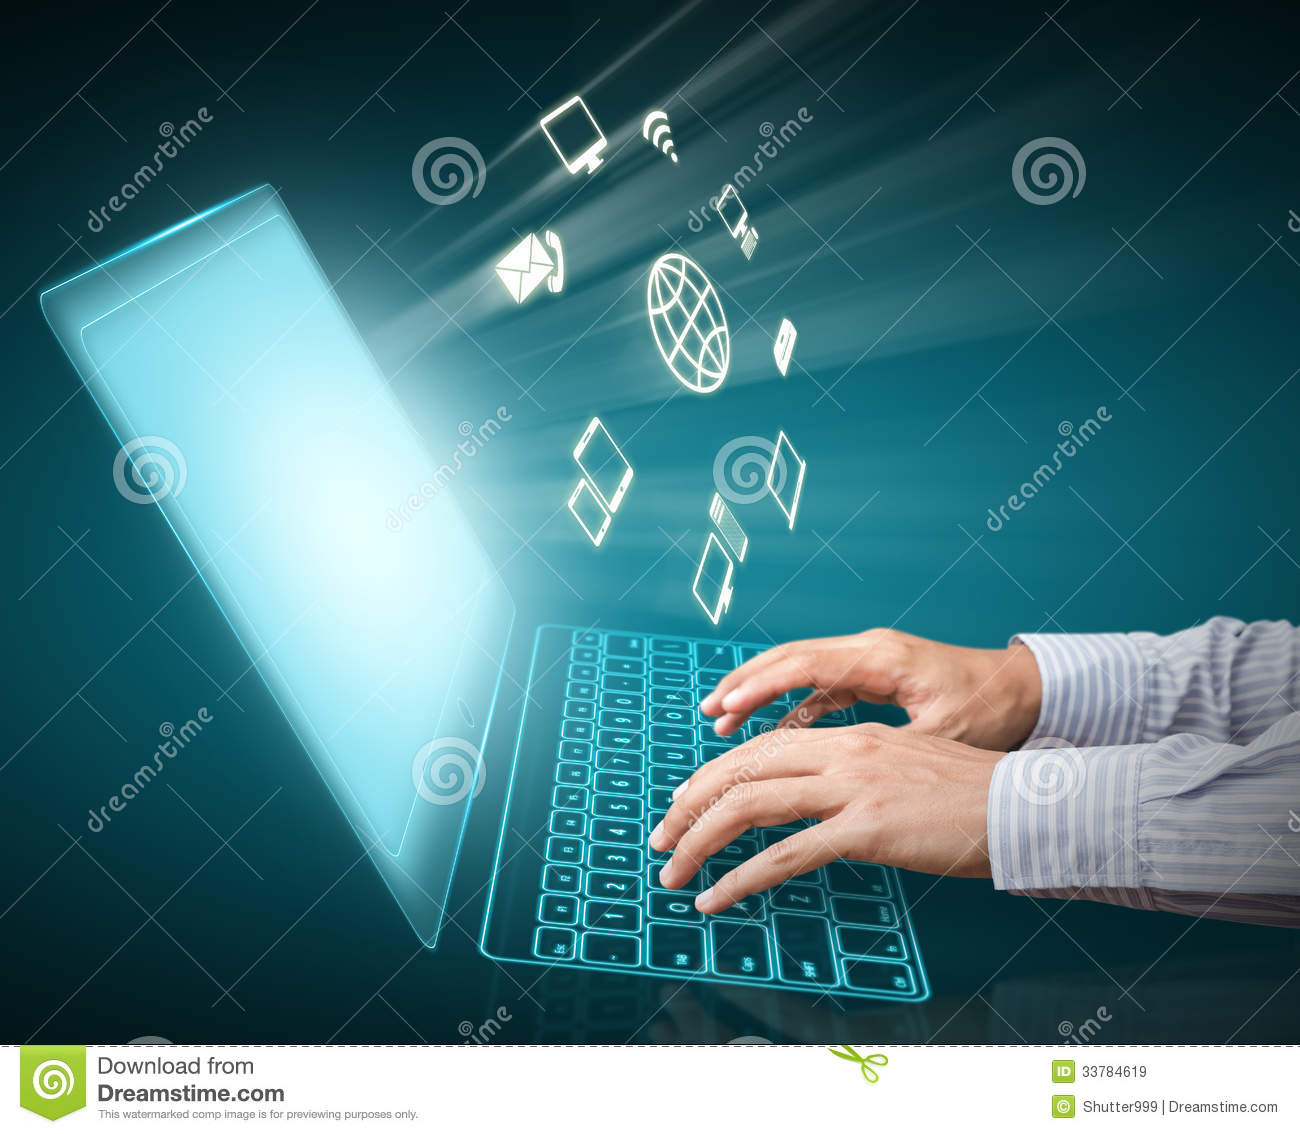 Computer Technology Royalty Free Stock Images